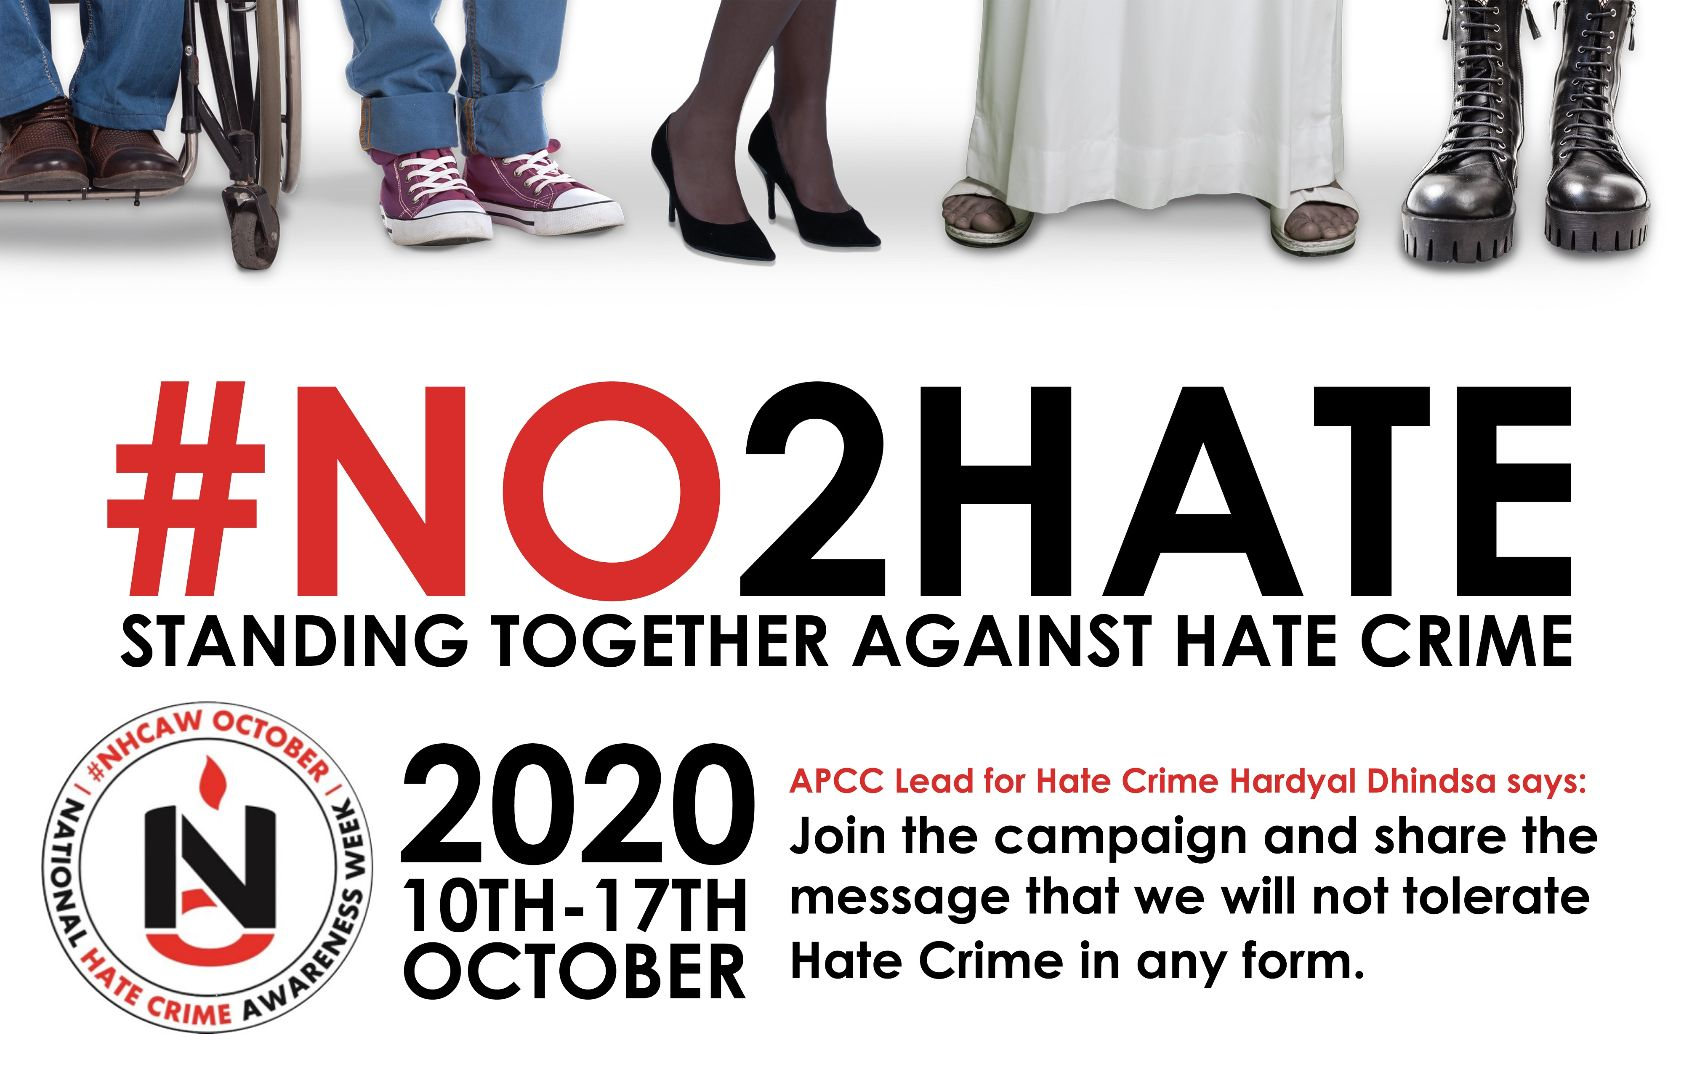 Poster with 'No to Hate' below images of different types of shoes